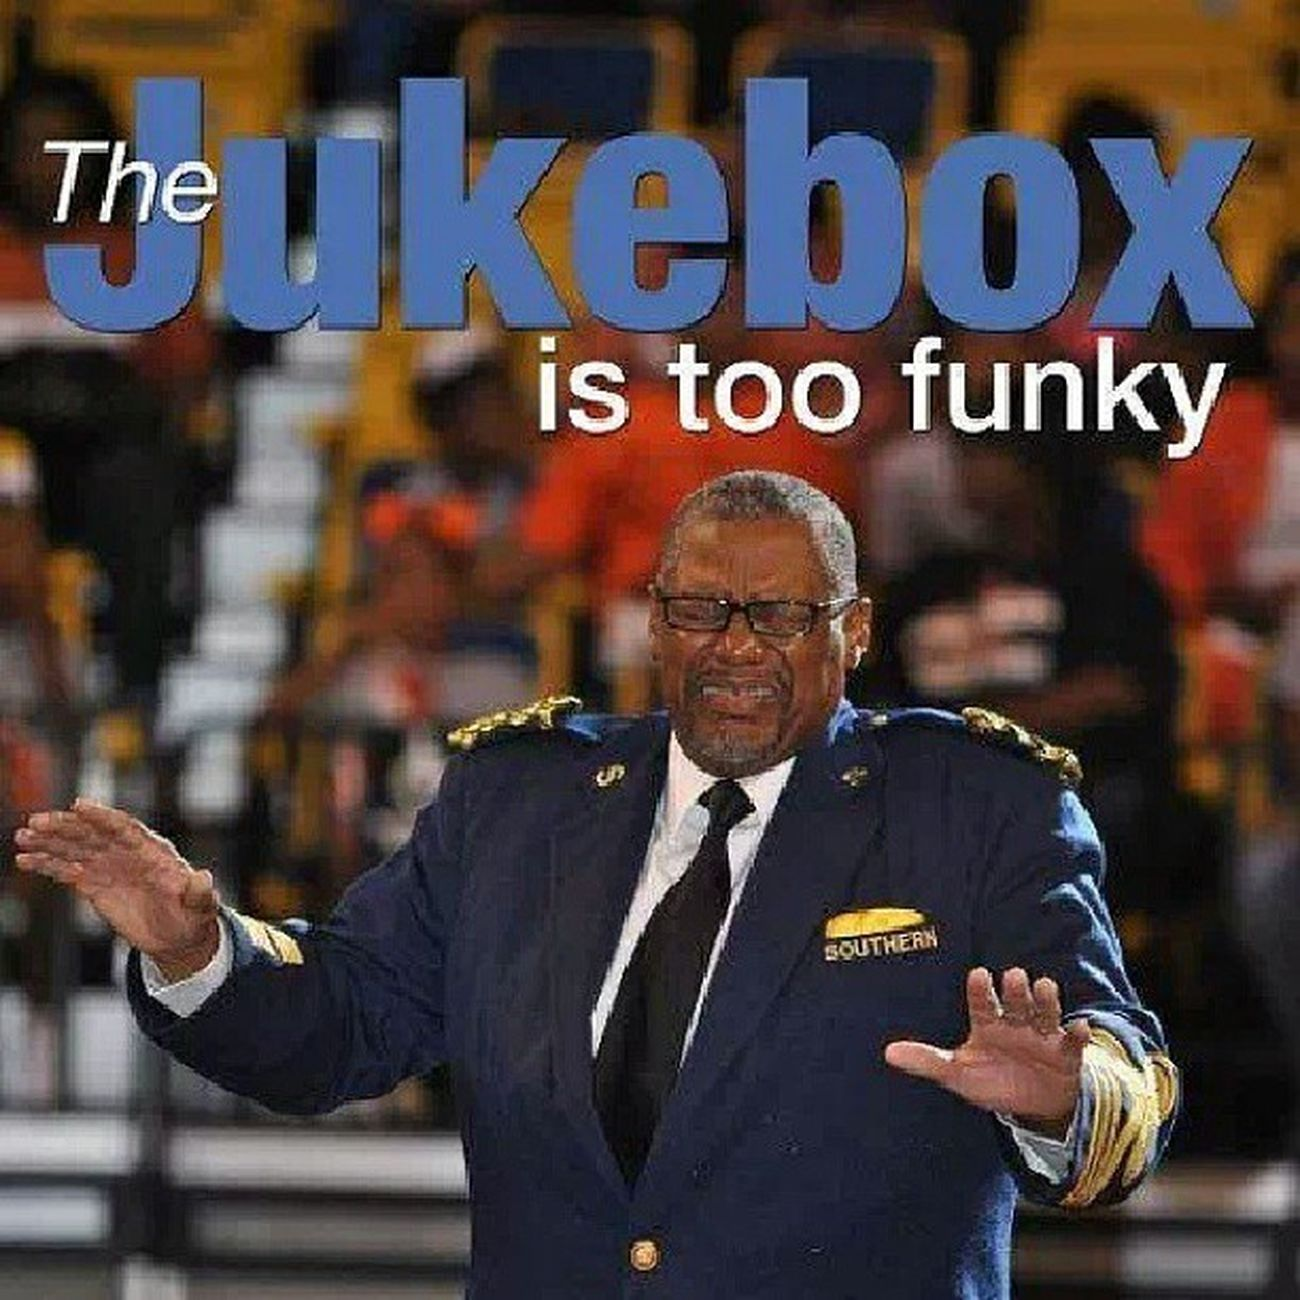 They bring dat mustard! Su ThaJukebox Realmusic